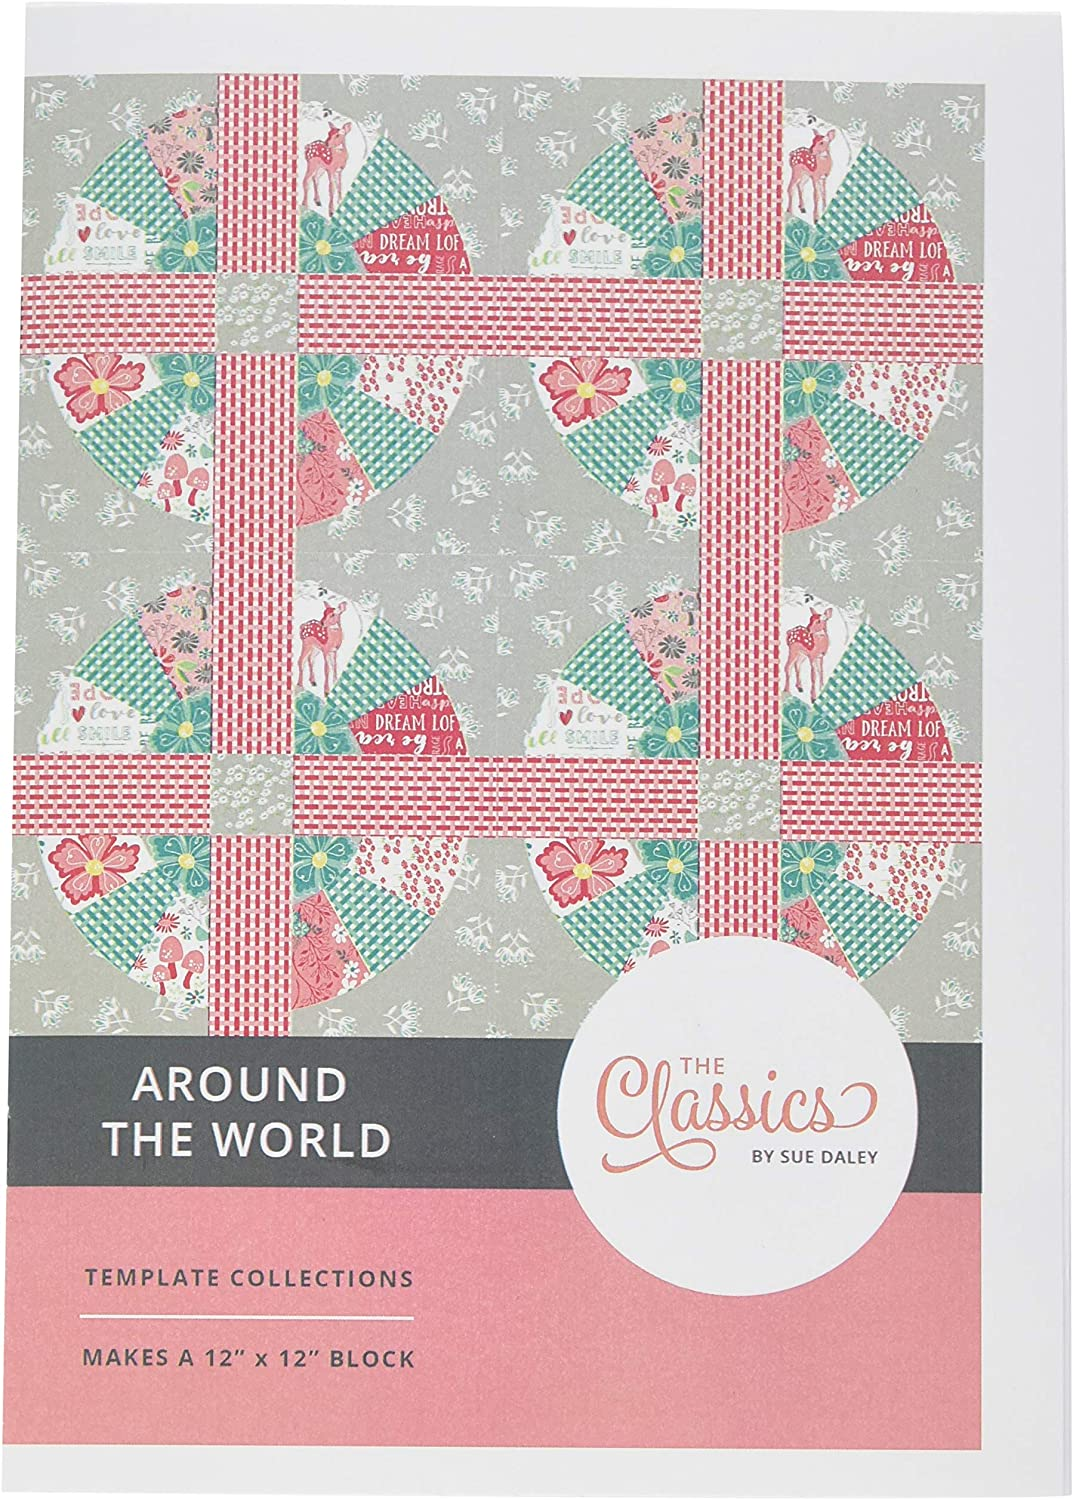 Sue Daley Designs CL108-ATW Around The World Block Classics Template Set Multicolor